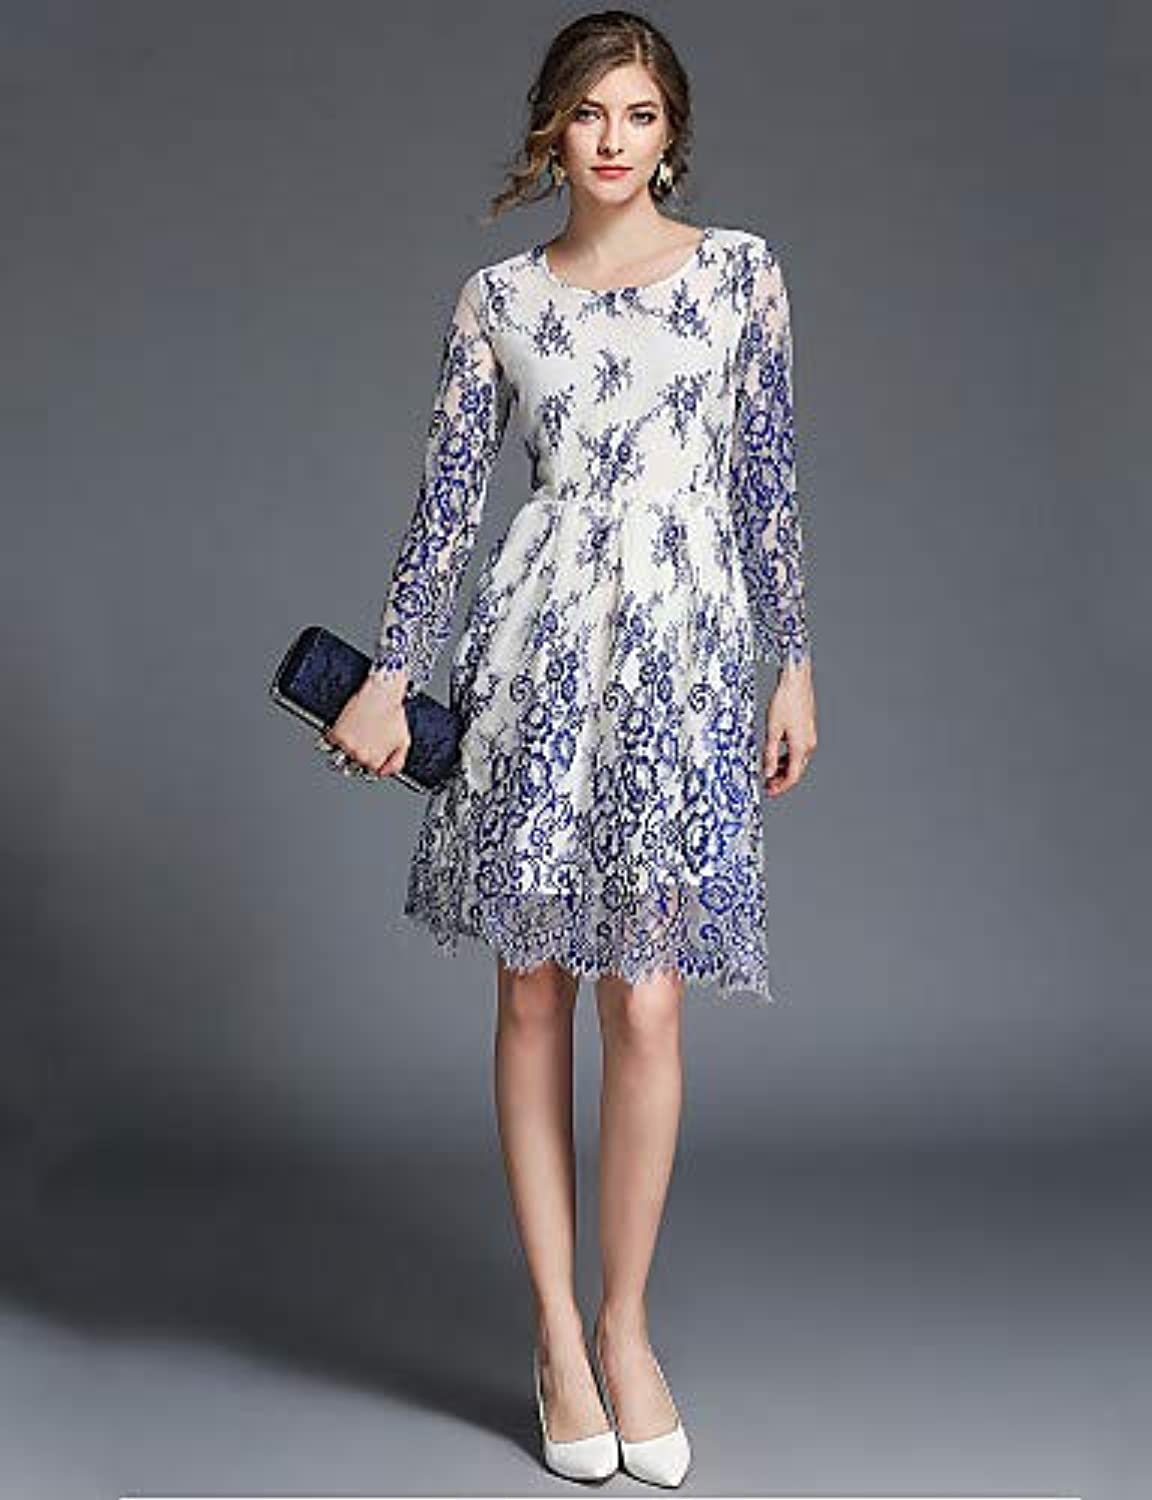 Women's Vintage Sophisticated A Line Dress  Floral, Lace Embroidered